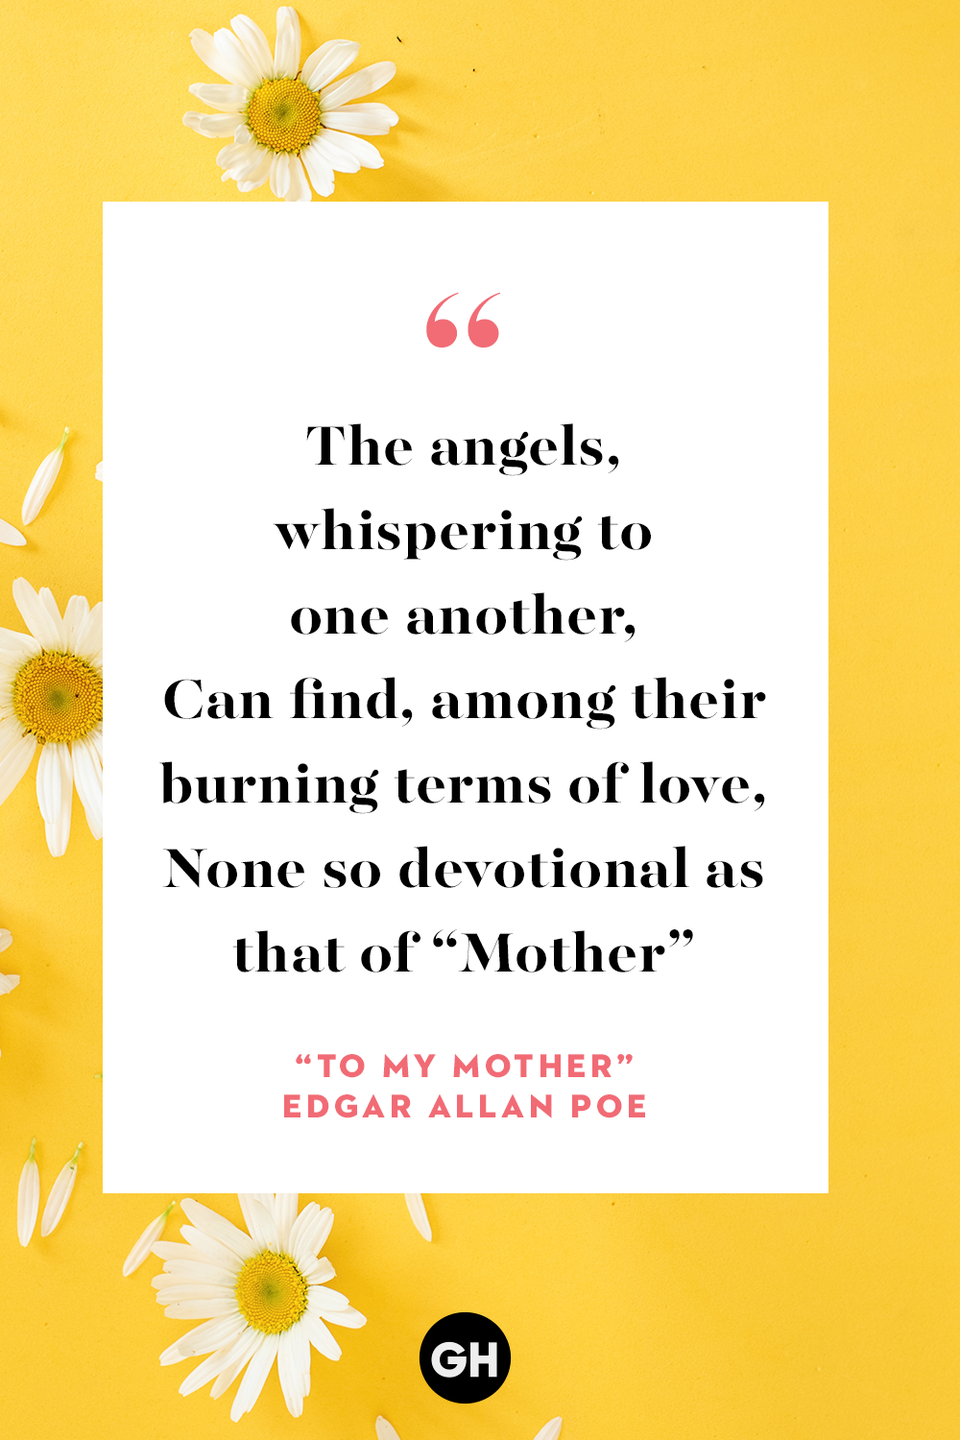 """<p>Because I feel that, in the Heavens above,</p><p>The angels, whispering to one another,</p><p>Can find, among their burning terms of love,</p><p>None so devotional as that of """"Mother,""""</p><p>Therefore by that dear name I long have called you —</p><p>You who are more than mother unto me,</p><p>And fill my heart of hearts, where Death installed you</p><p>In setting my Virginia's spirit free.</p><p>My mother — my own mother, who died early,</p><p>Was but the mother of myself; but you</p><p>Are mother to the one I loved so dearly,</p><p>And thus are dearer than the mother I knew</p><p>By that infinity with which my wife</p><p>Was dearer to my soul than its soul-life.</p>"""